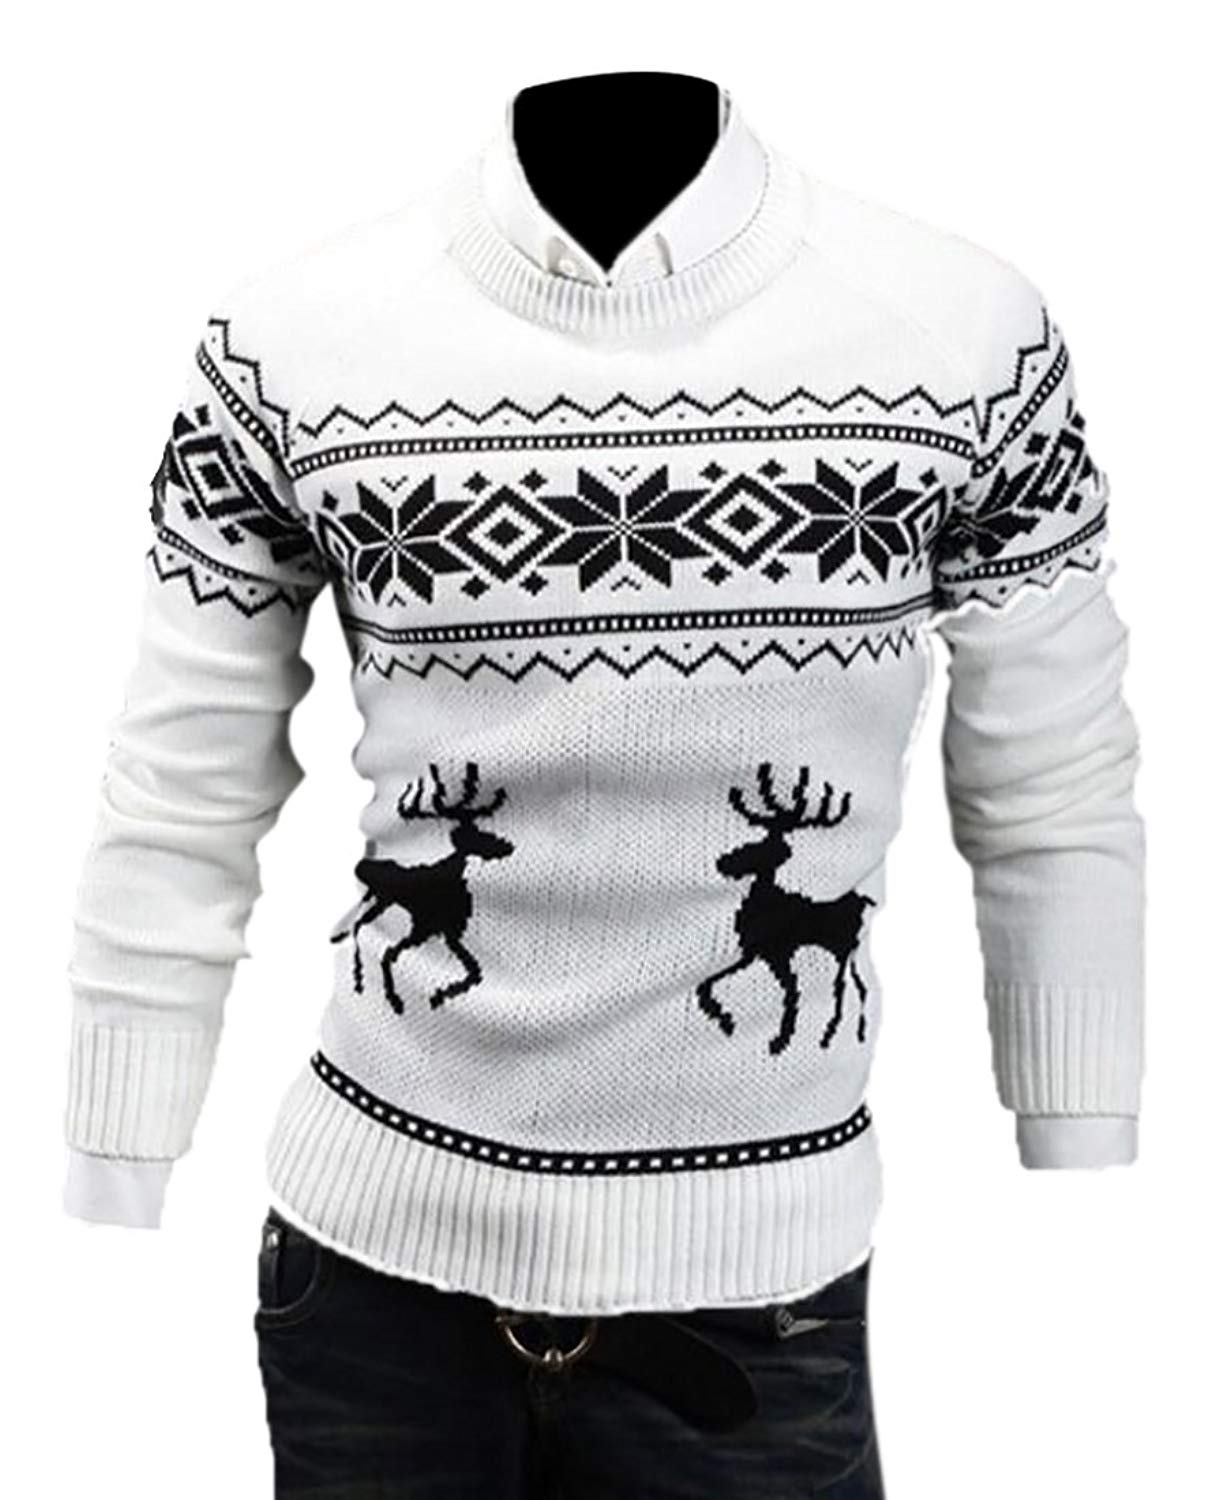 d885d5e26 Get Quotations · WSPLYSPJY Mens Ugly Christmas Sweater Reindeer Climax  Tacky Christmas Sweater White L